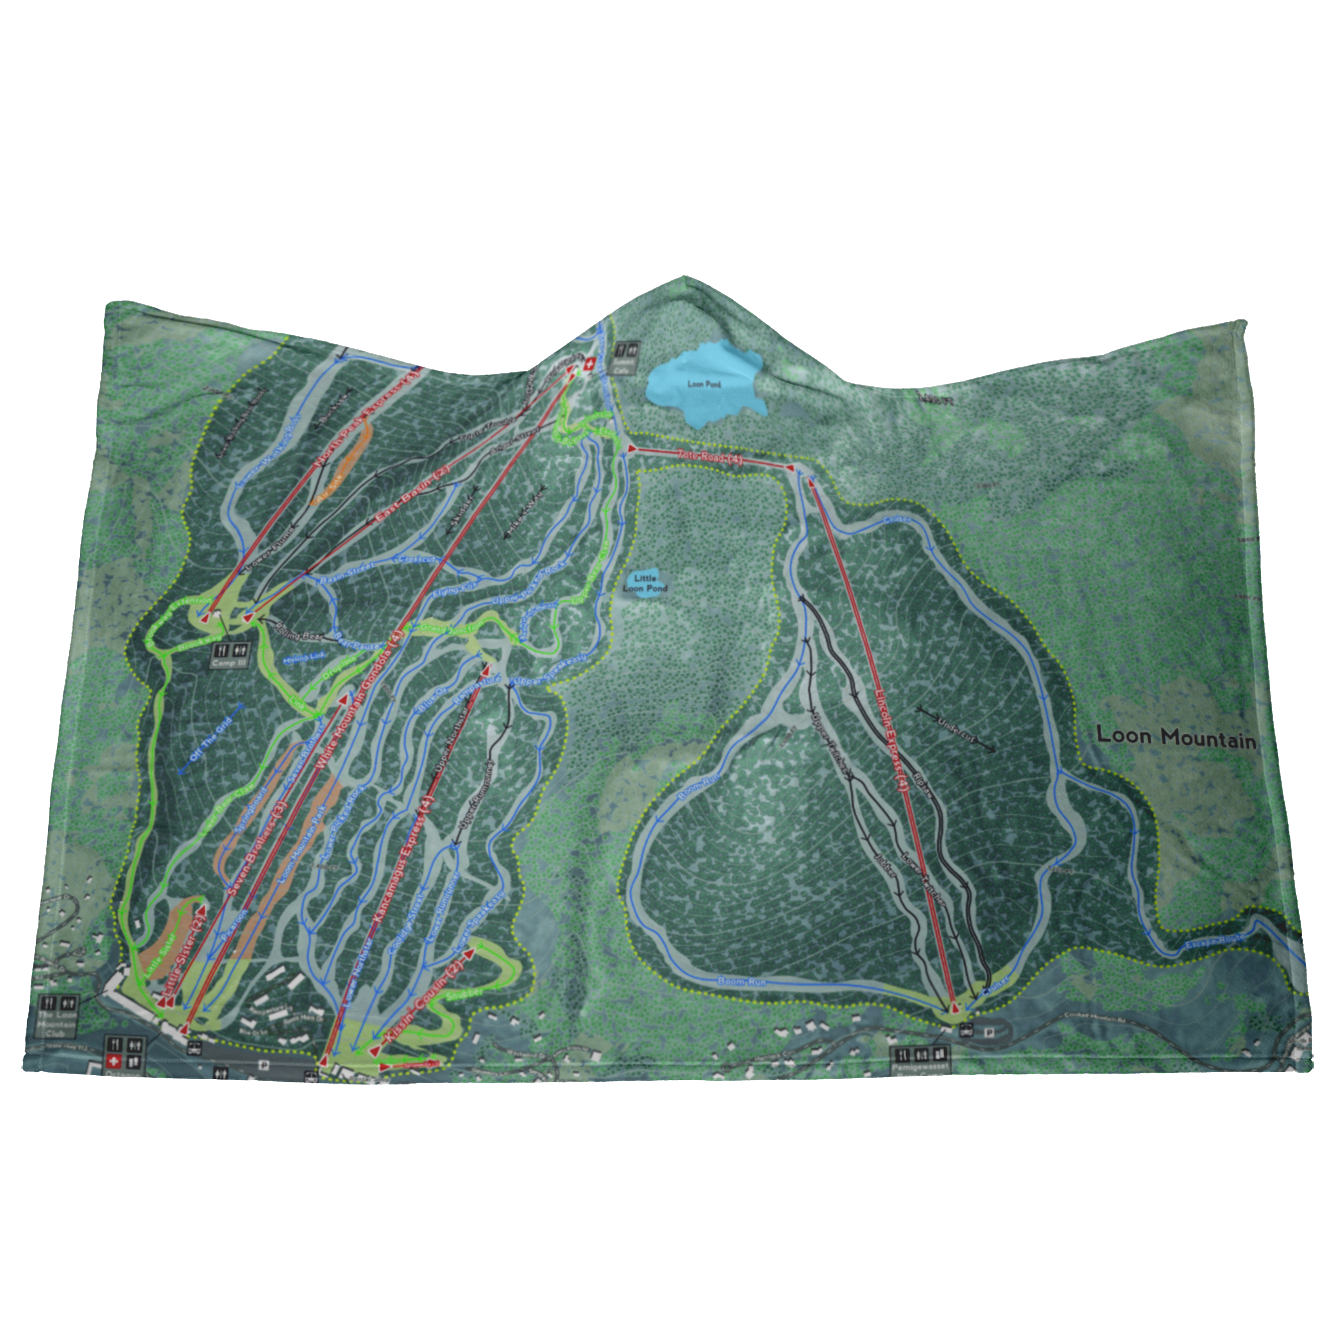 Loon Mountain, New Hampshire Ski Resort Map - Hooded Blanket